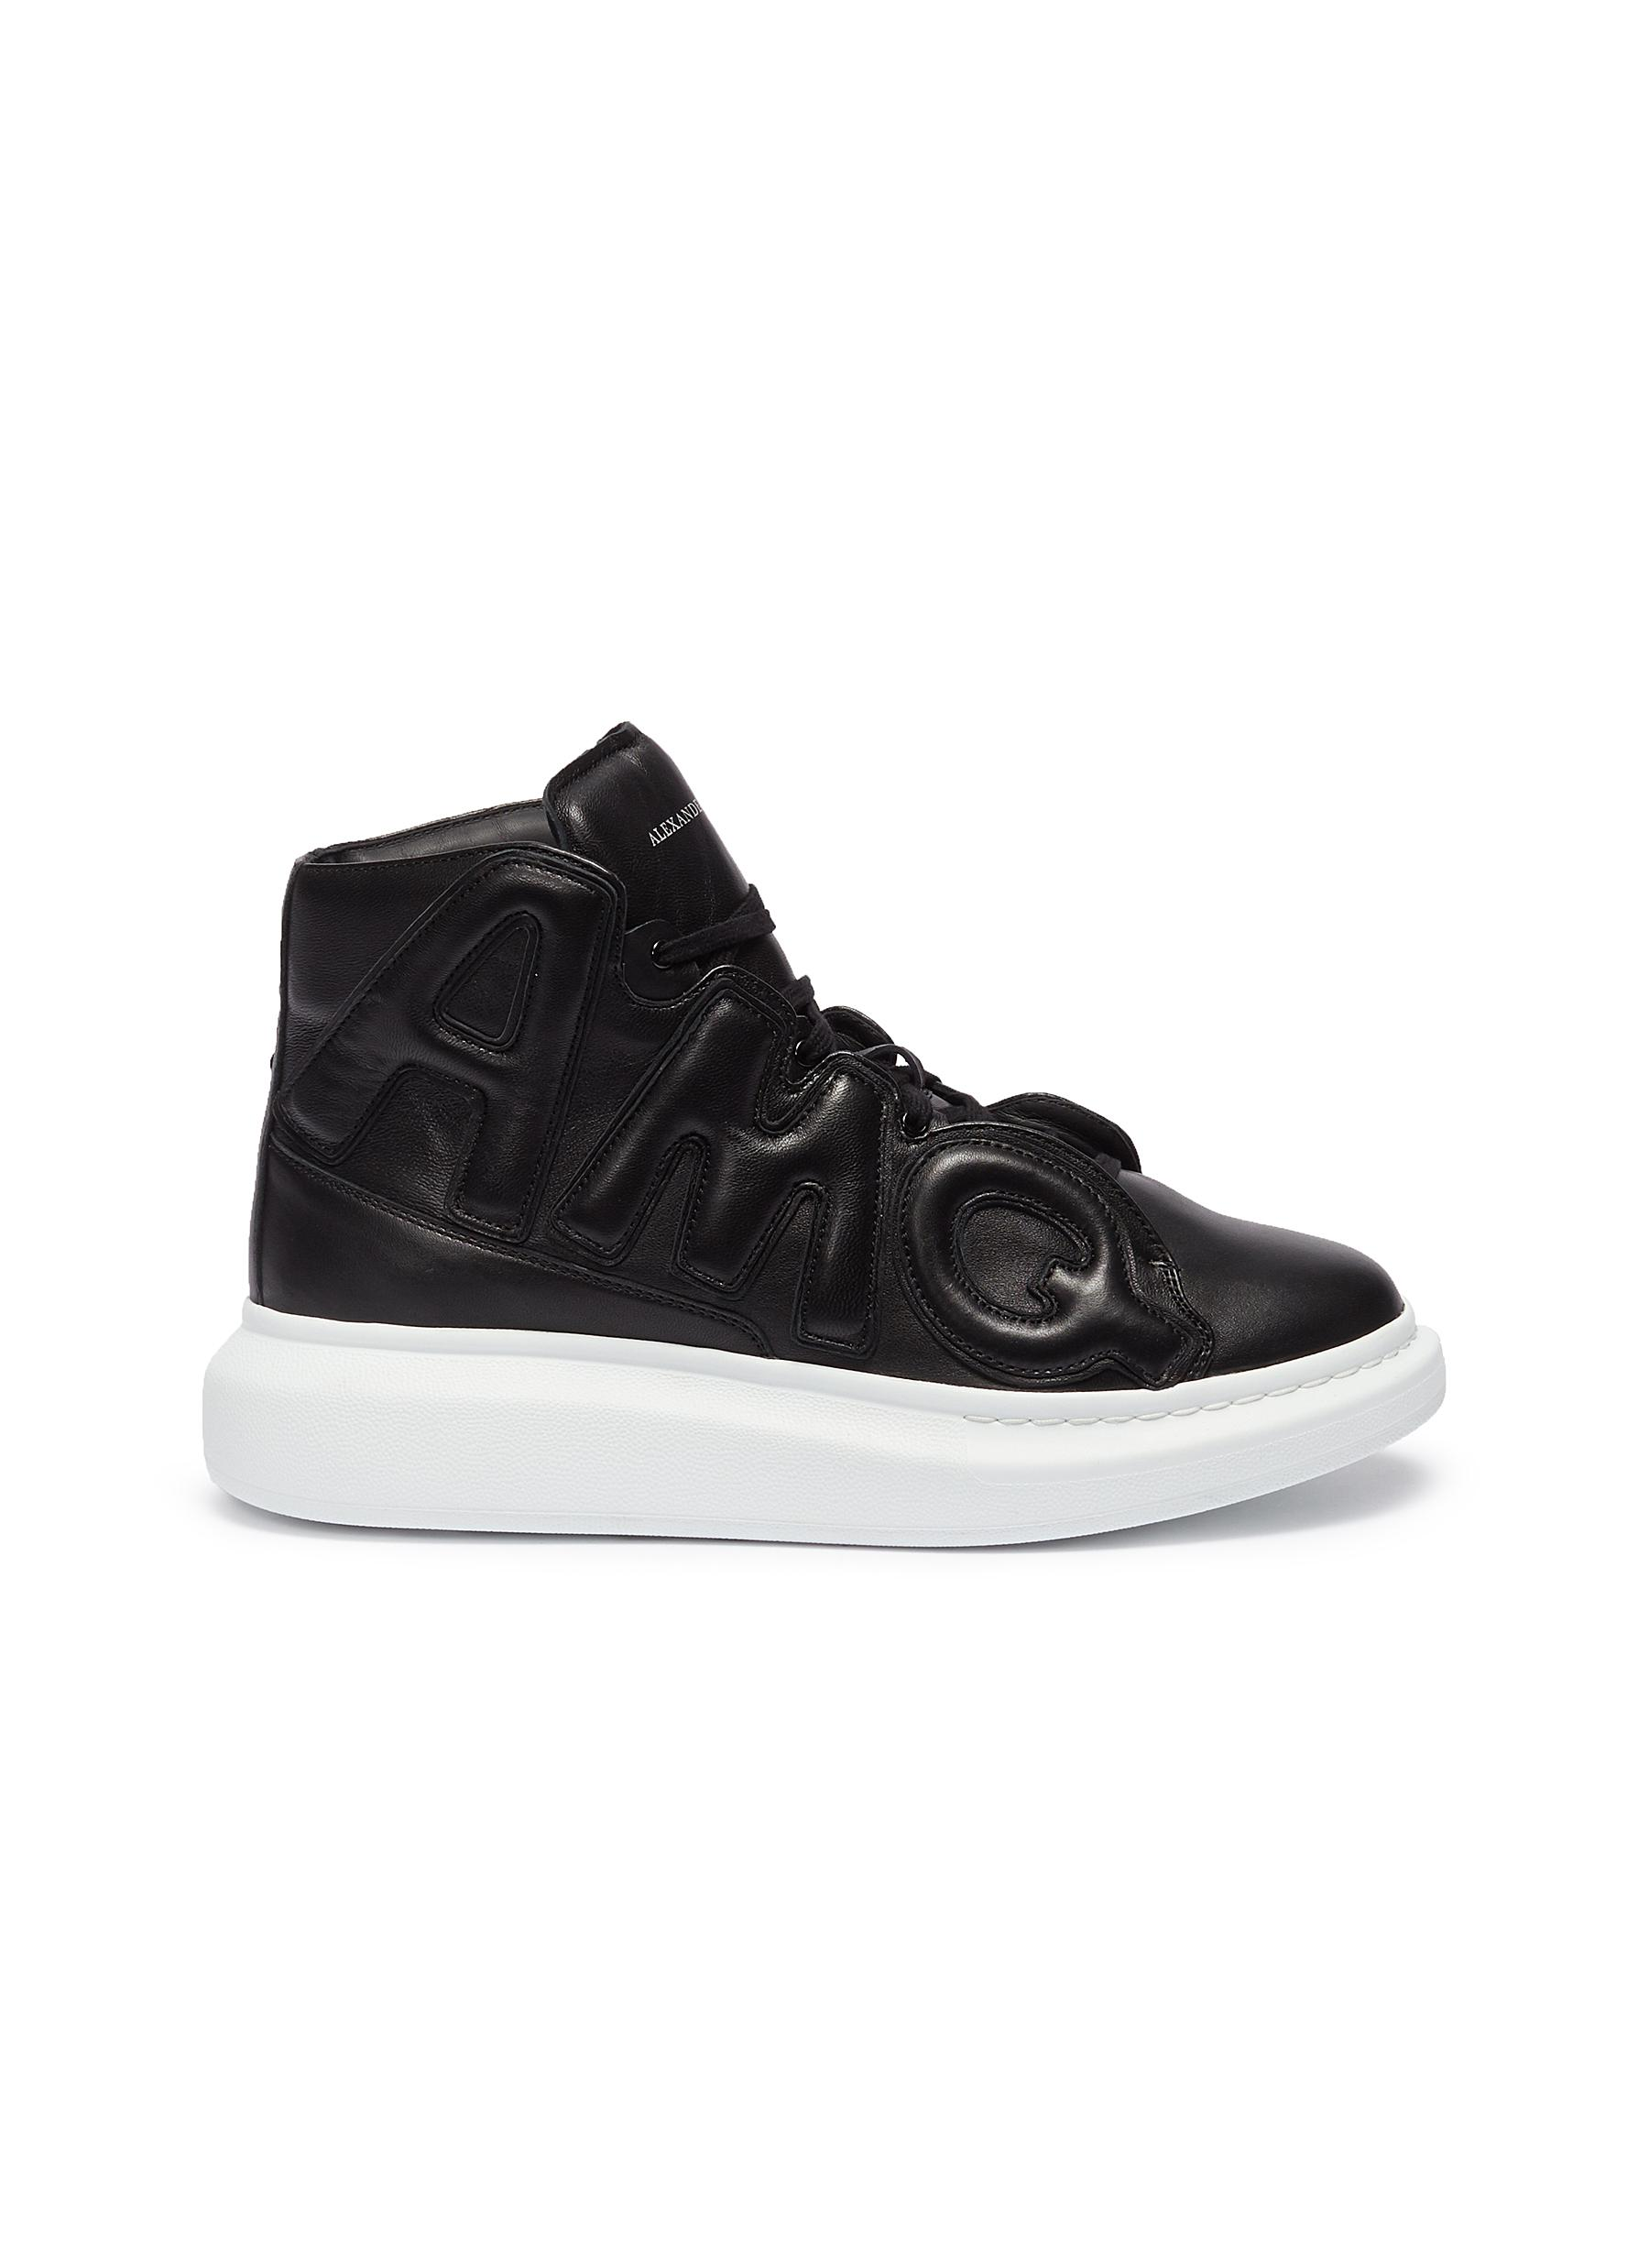 Photo of Oversized outsole logo panel leather high top sneakers by Alexander McQueen womens shoes - buy Alexander McQueen footwear online